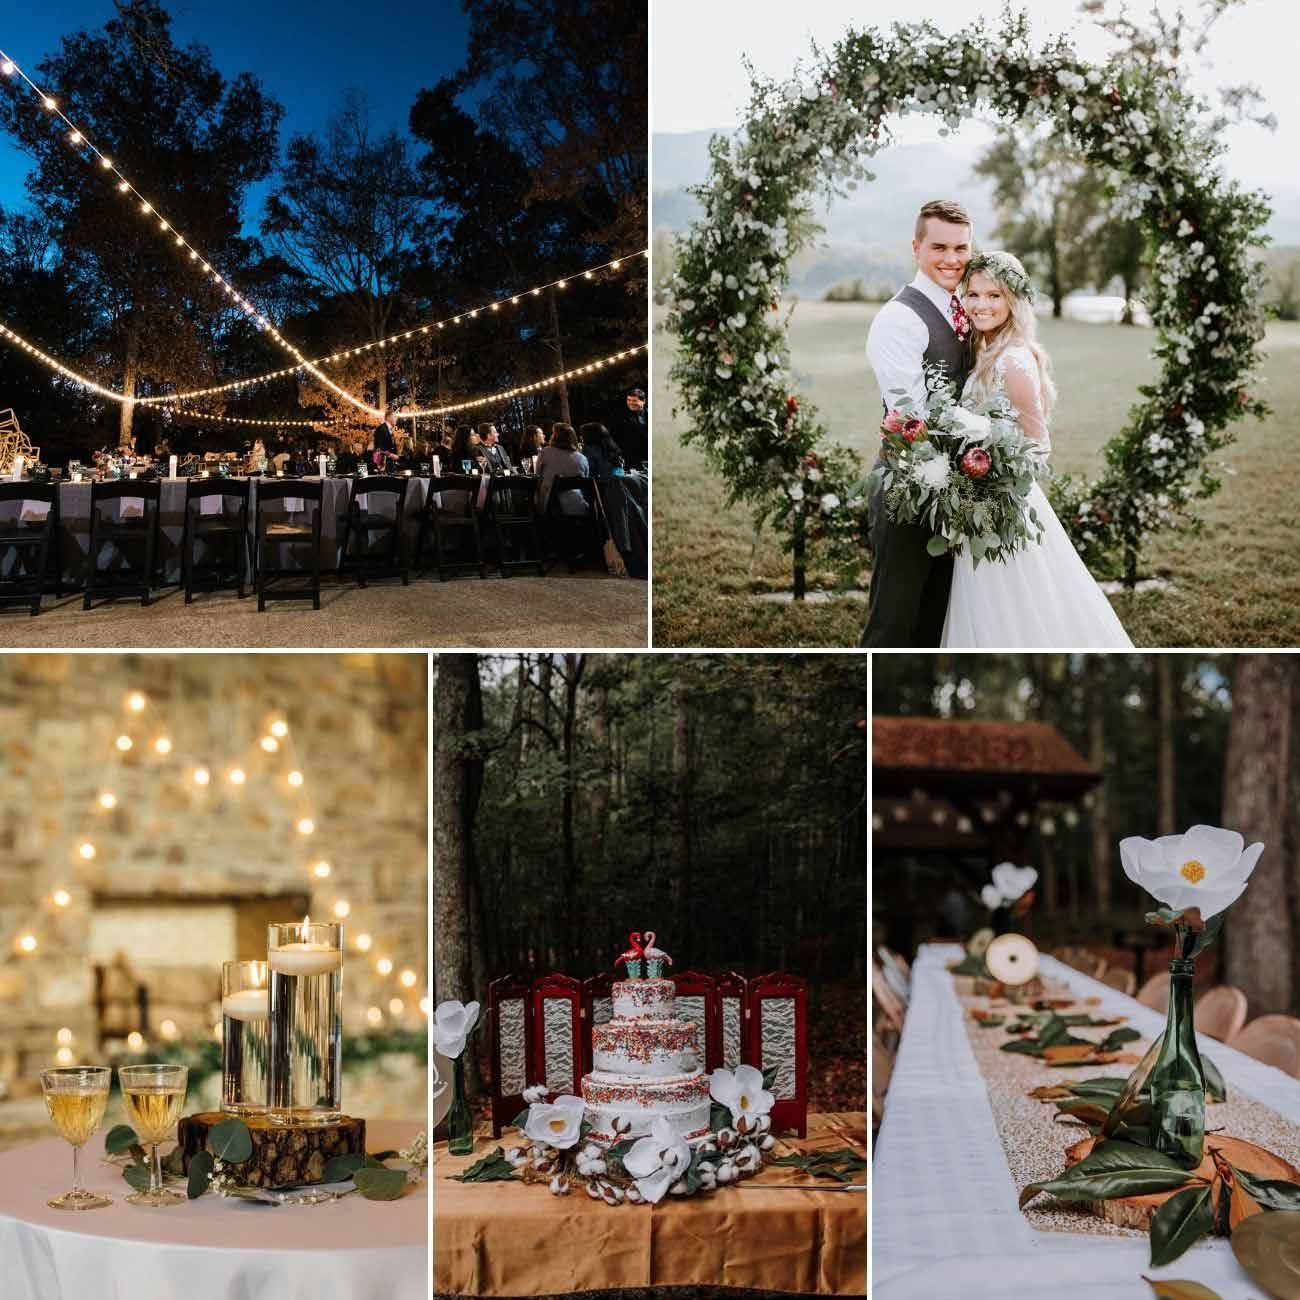 Weddings at Tennessee State Parks